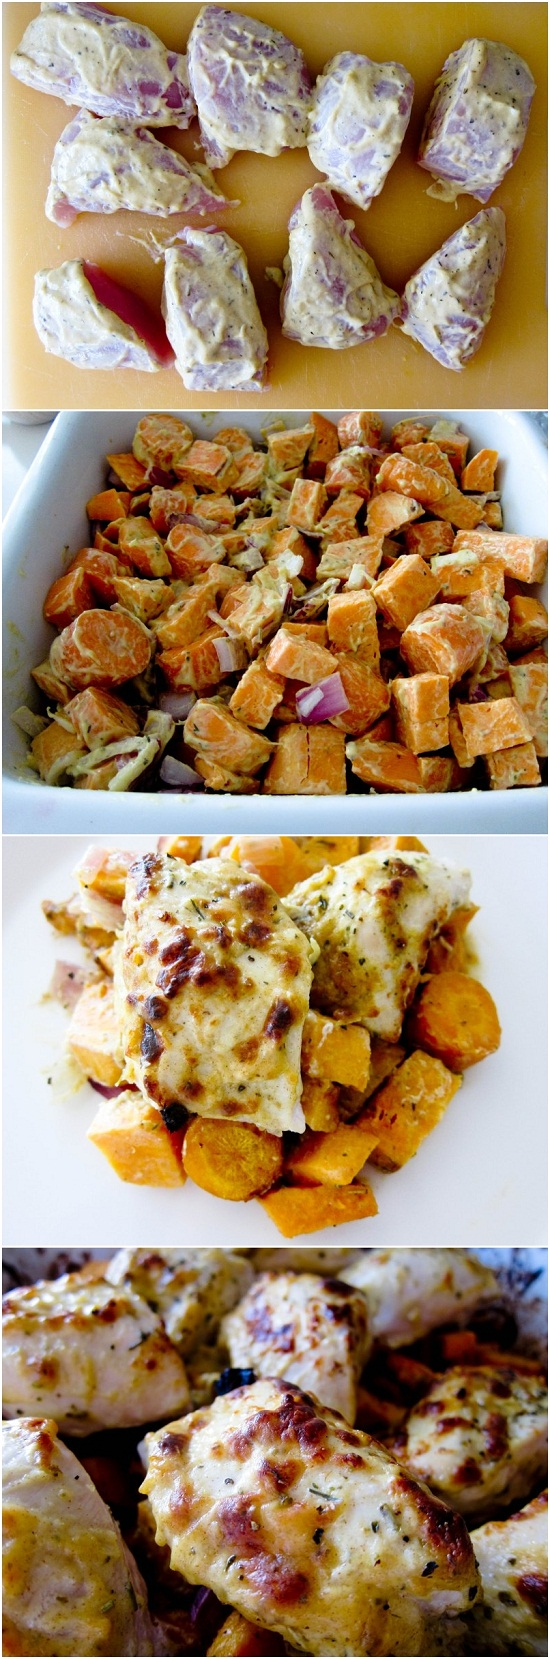 supereasy-italian-mustard-chicken-with-root-vegetables-Recipe